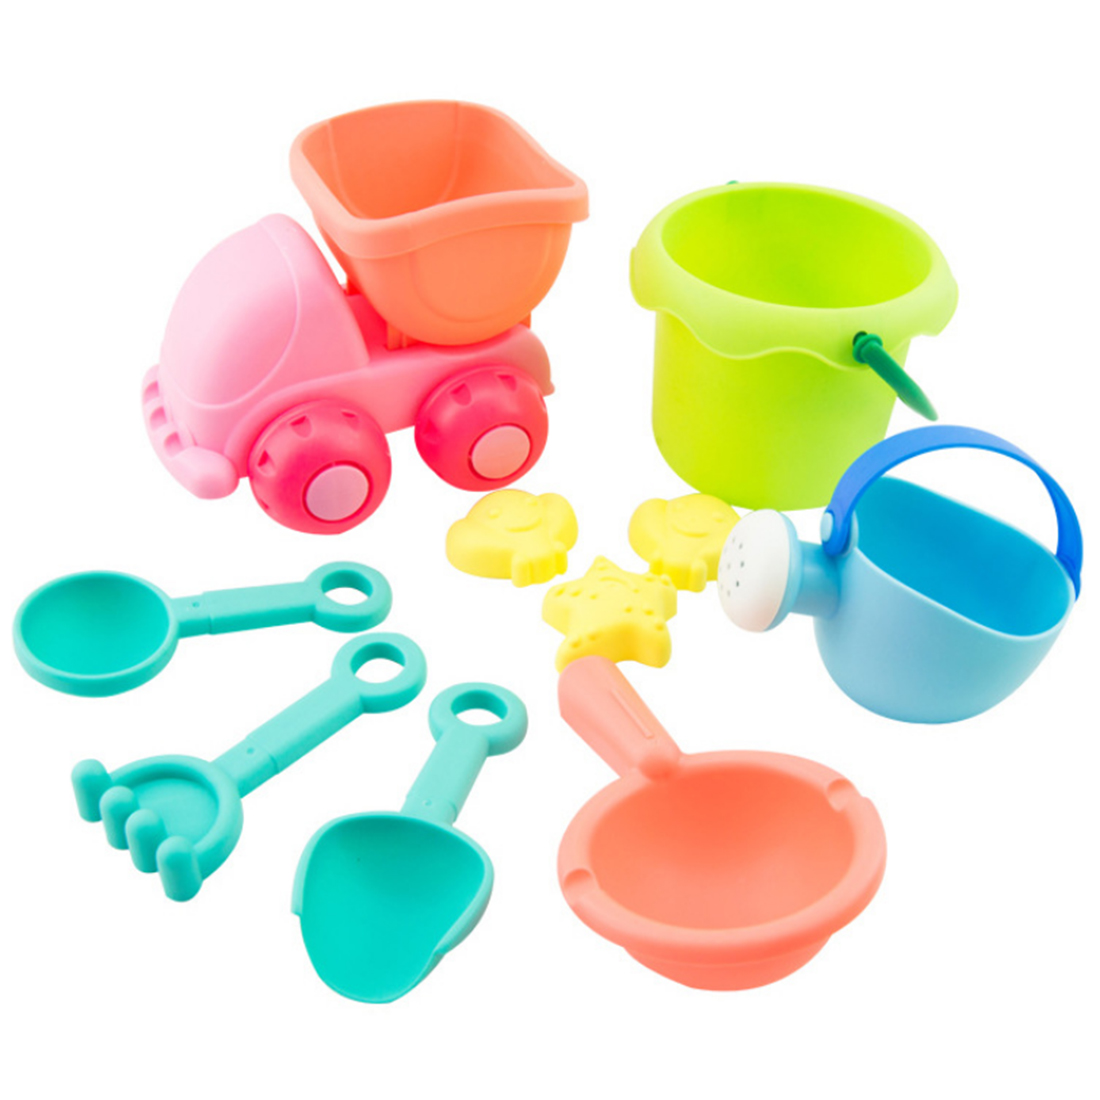 10Pcs Kids Beach Sand Toys Set Bucket Shovels Watering Can Children Safety Soft Plastic Beach Playing Toys Color Random by